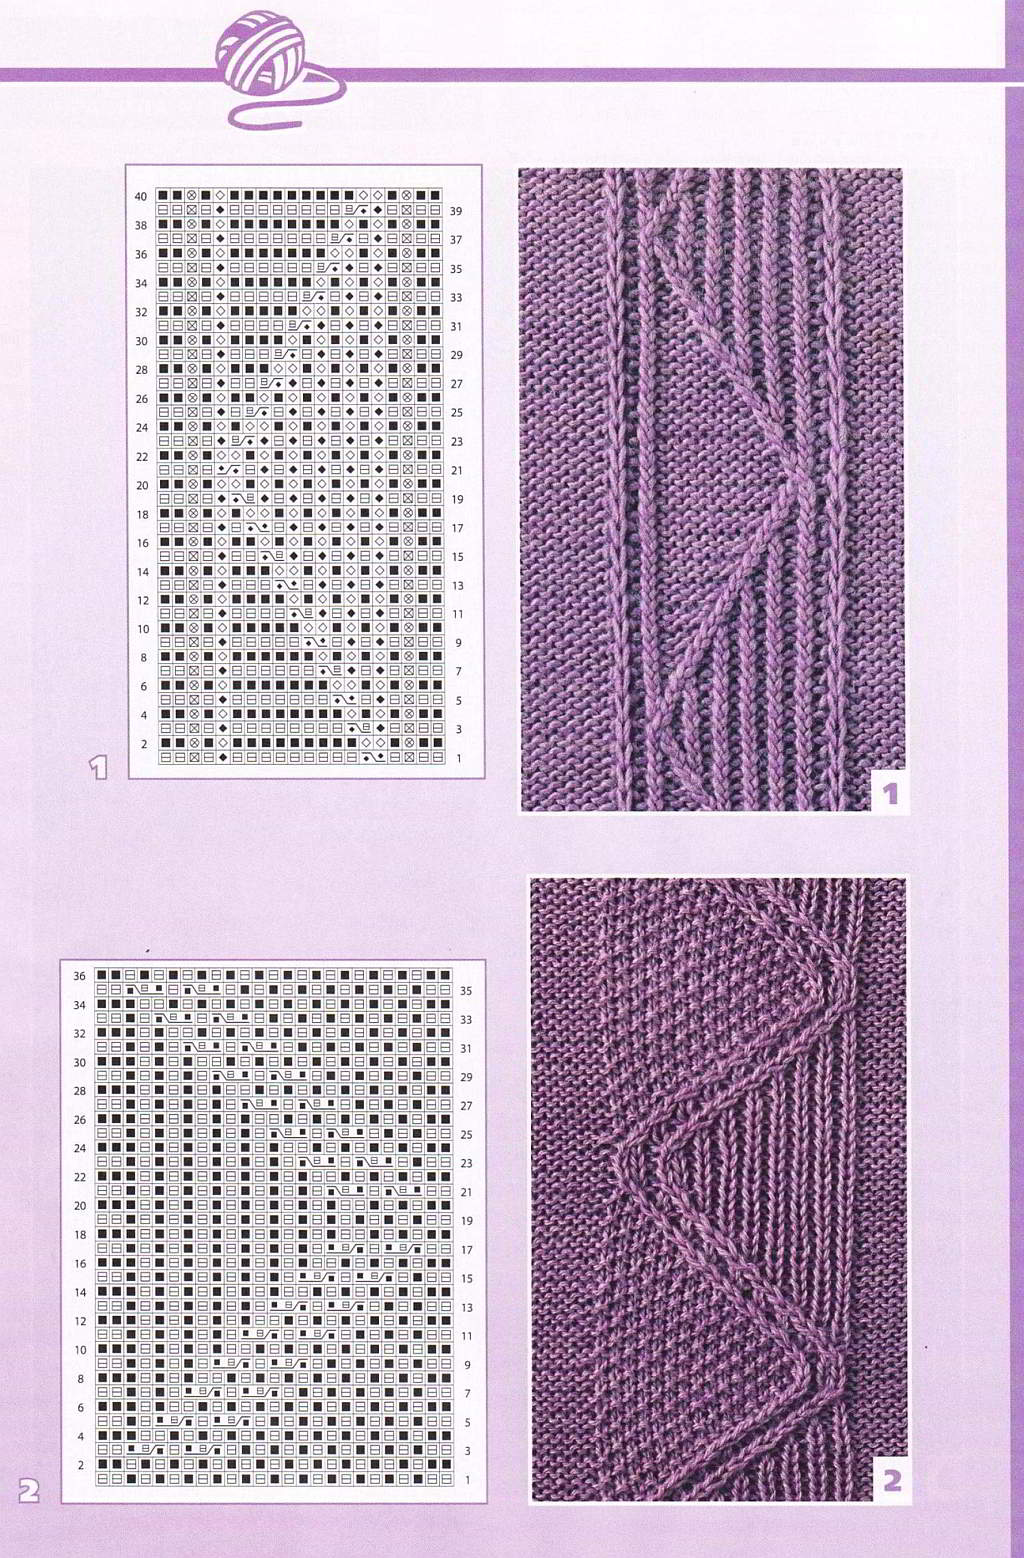 47 Knitwear Patterns Senpolia Handmade